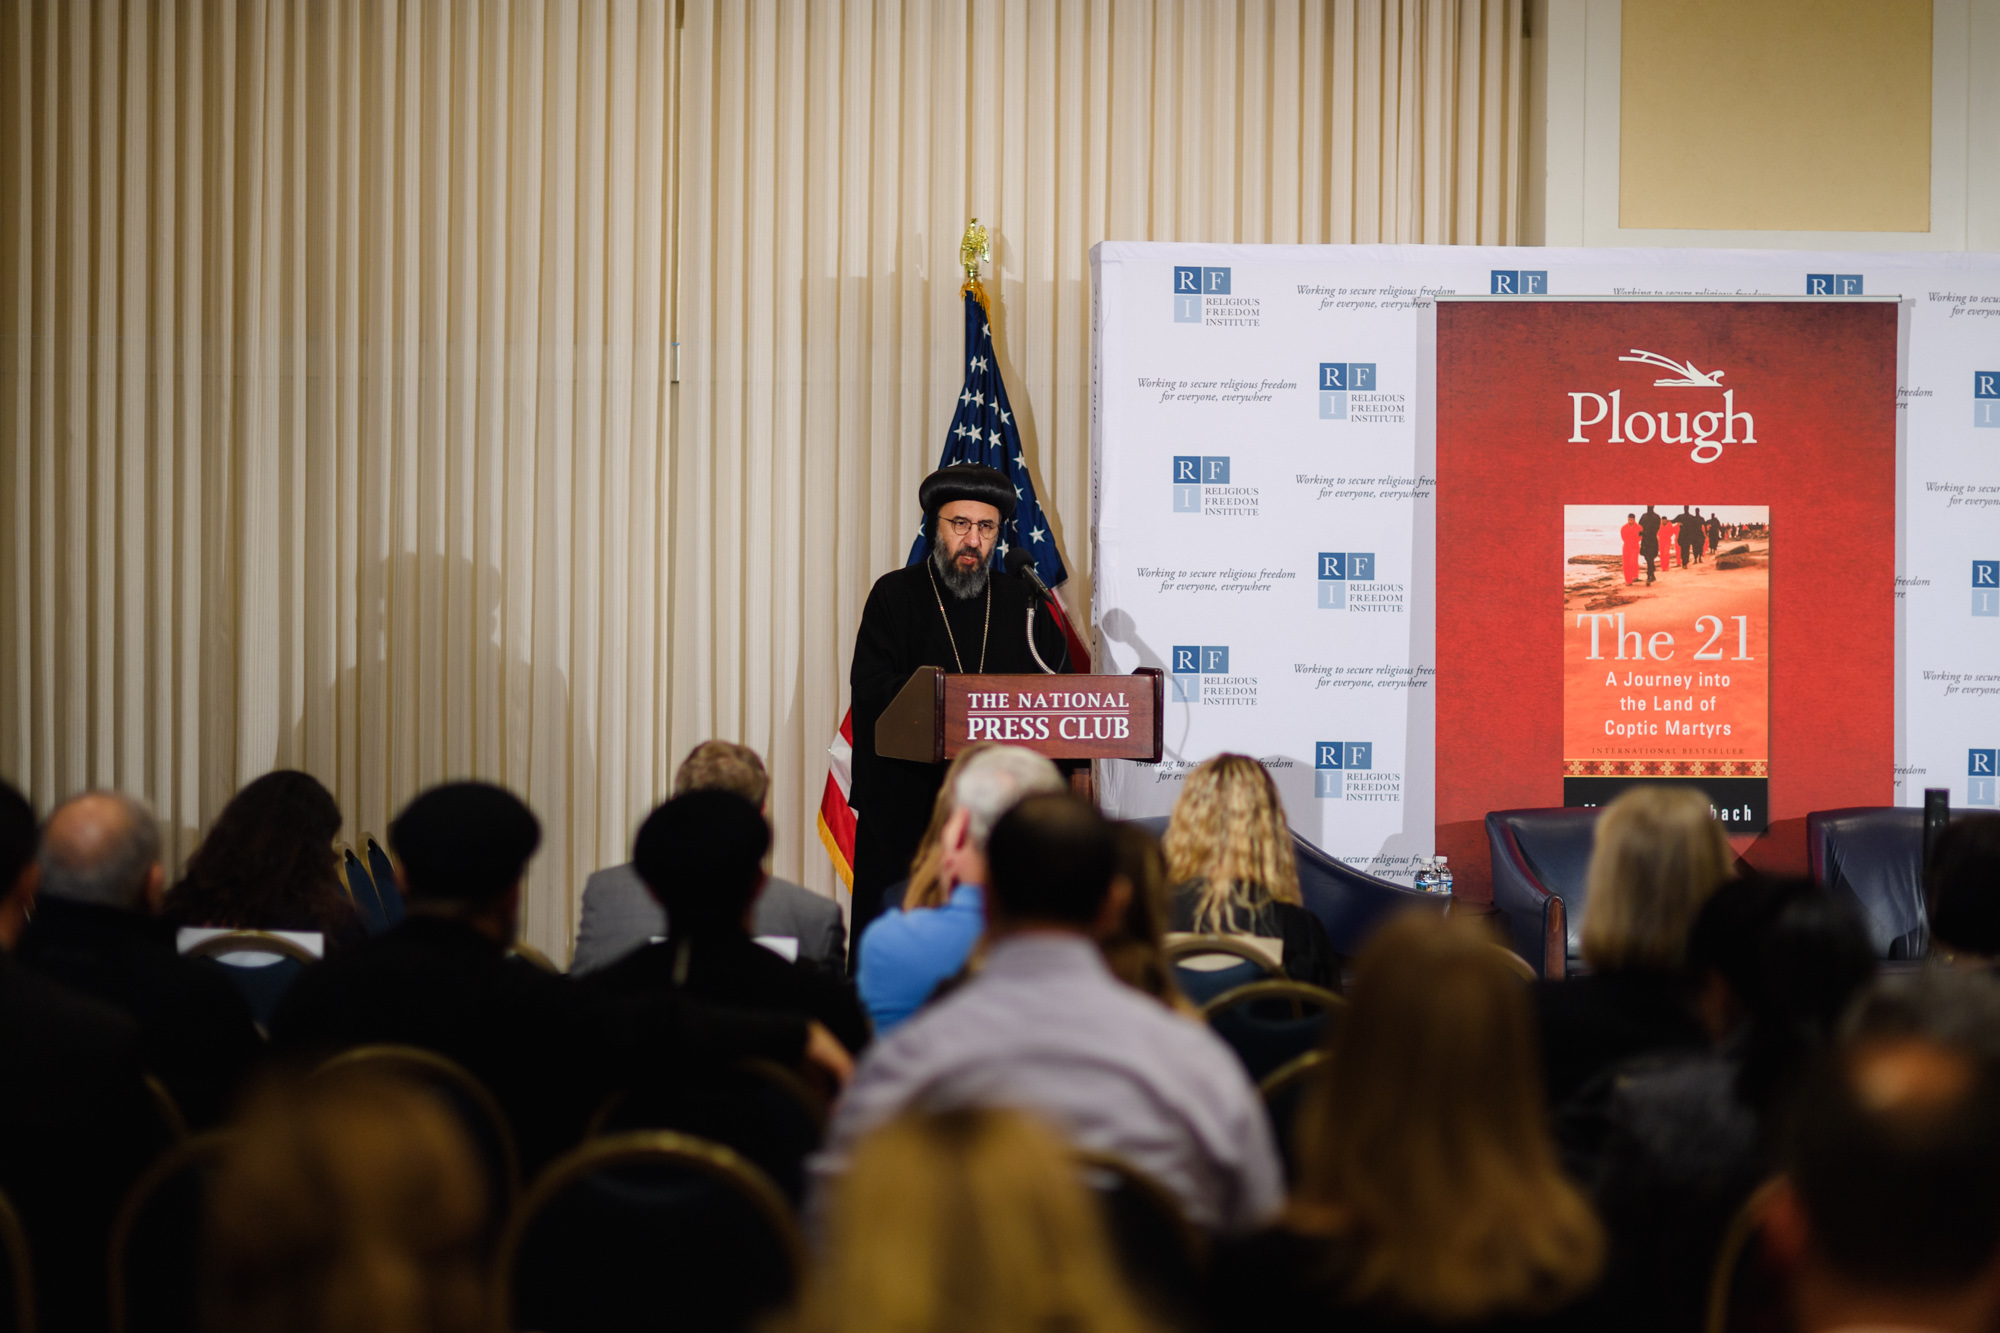 060 - February 12th 2019 Religious Freedom Institute at National Press Club - Photo Nathan Mitchell.jpg